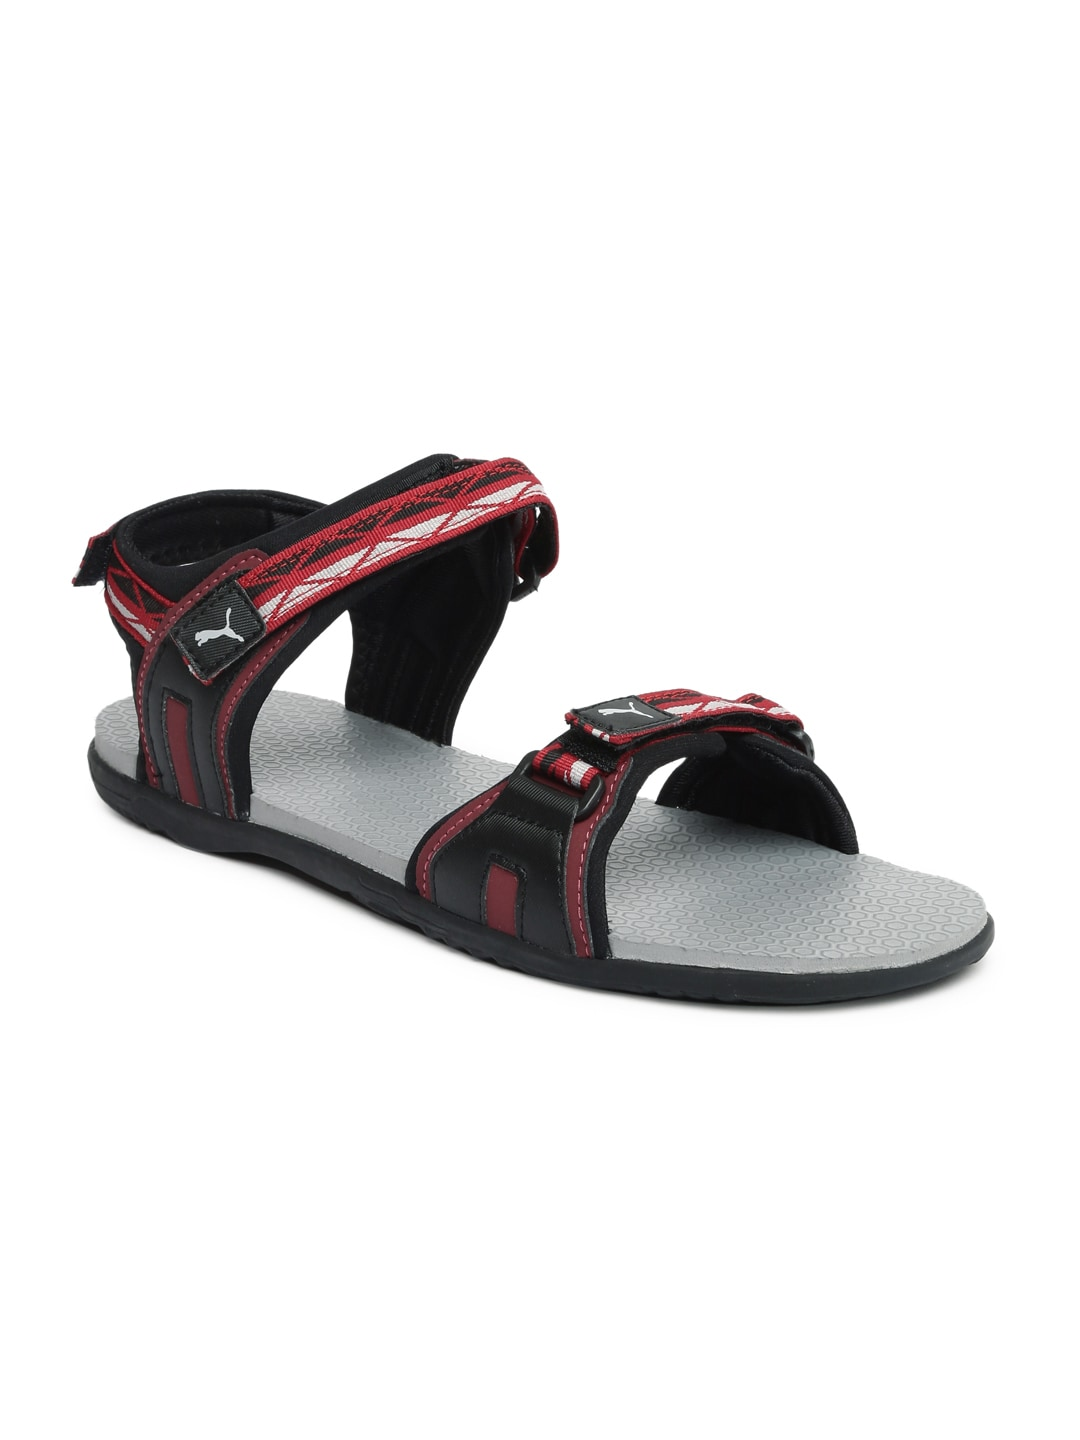 f1662f1955e8 Puma Sandal - Buy Puma Sandal Online in India